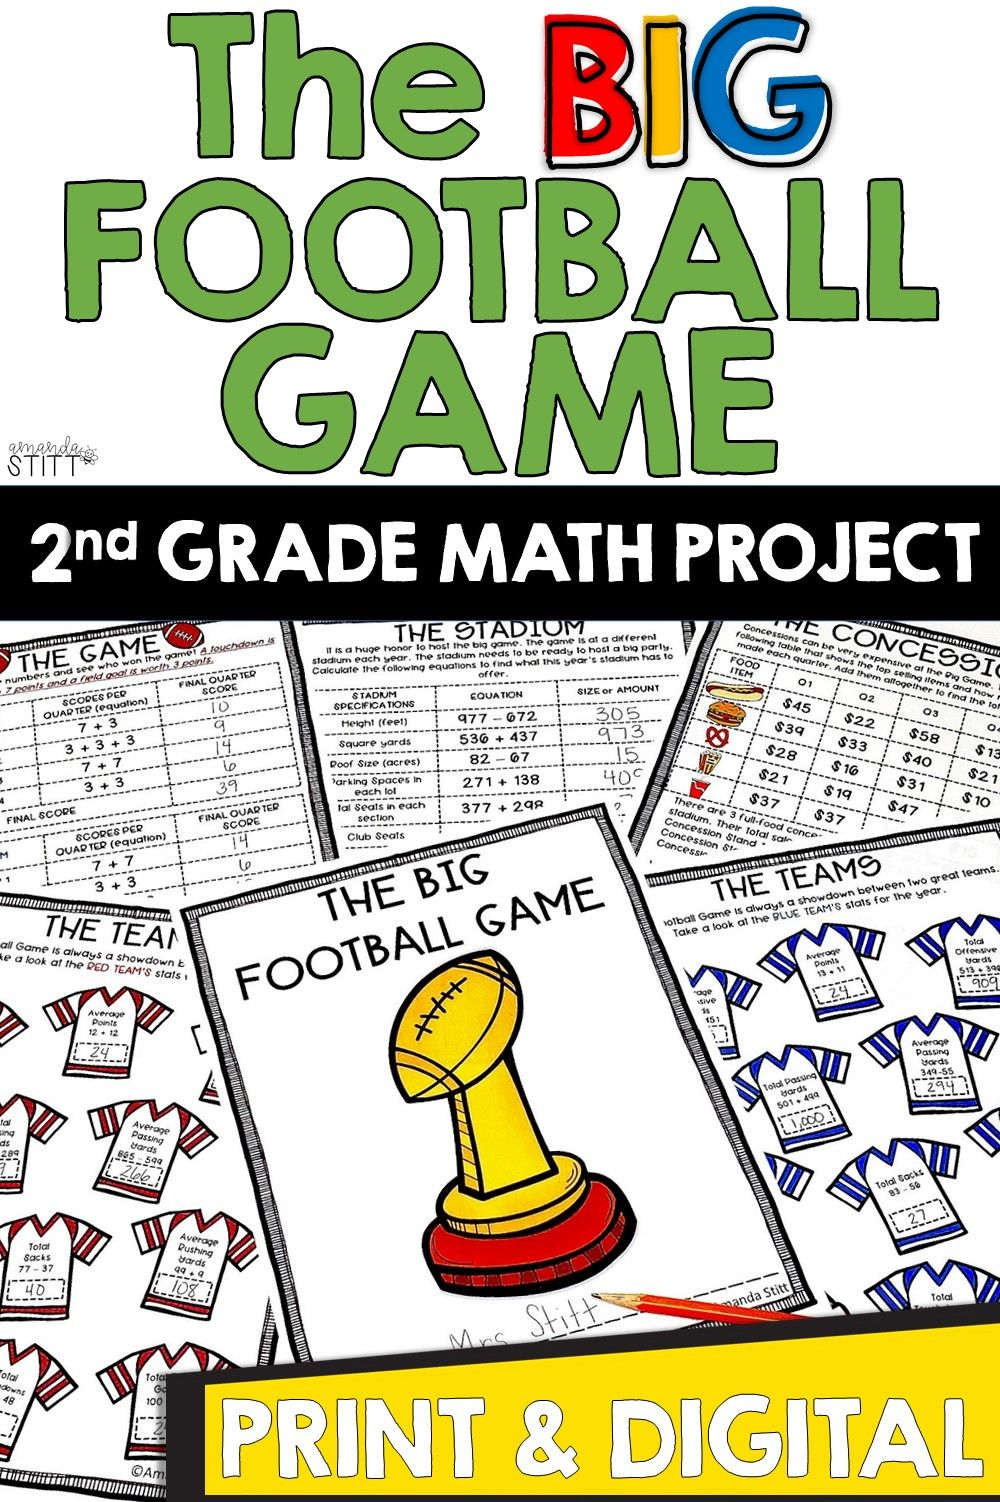 Big Football Game Addition And Subtraction Math Project For 2nd Graders In 2021 Football Math Activities Math Football Math Projects [ 1502 x 1000 Pixel ]